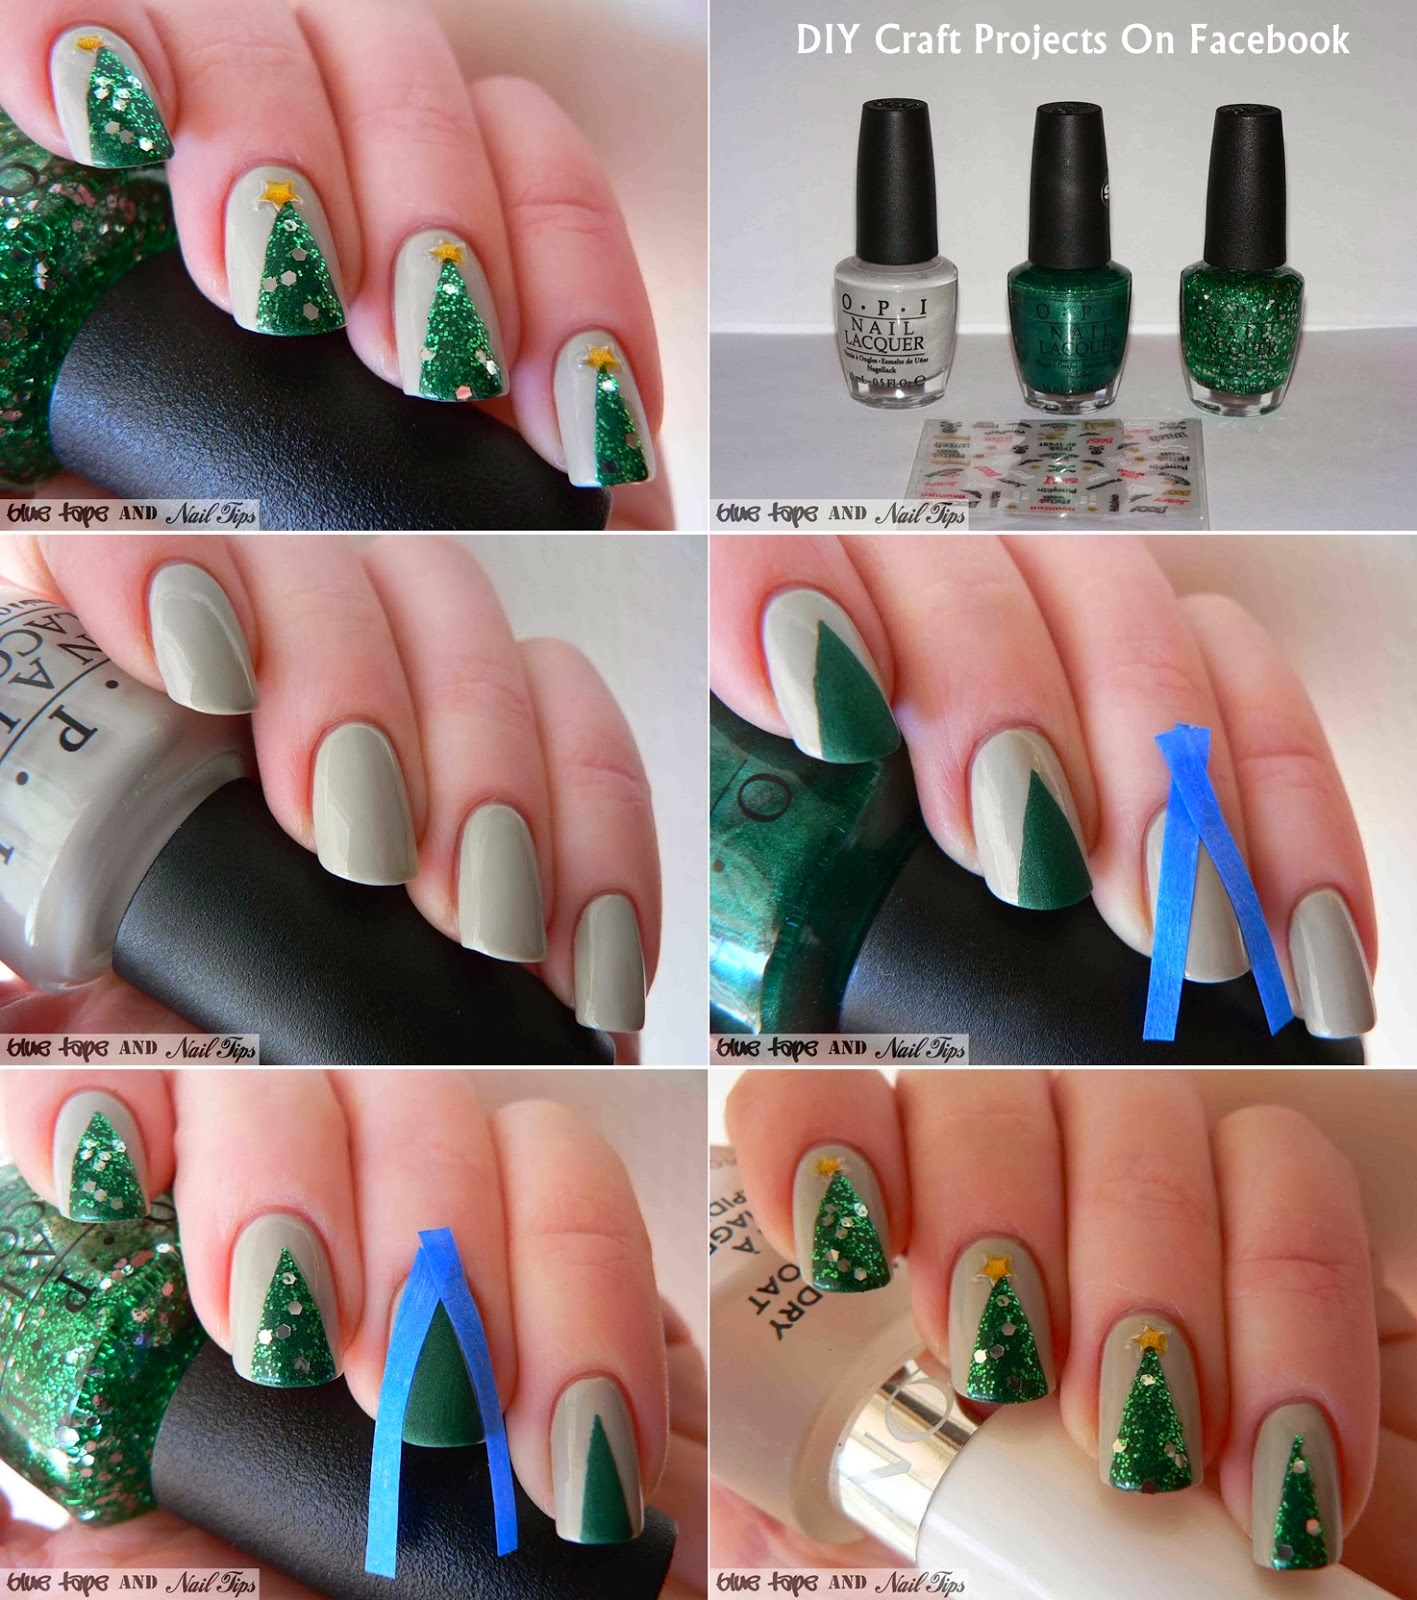 Simply Creative: Fun DIY Christmas Nail Art Tutorials